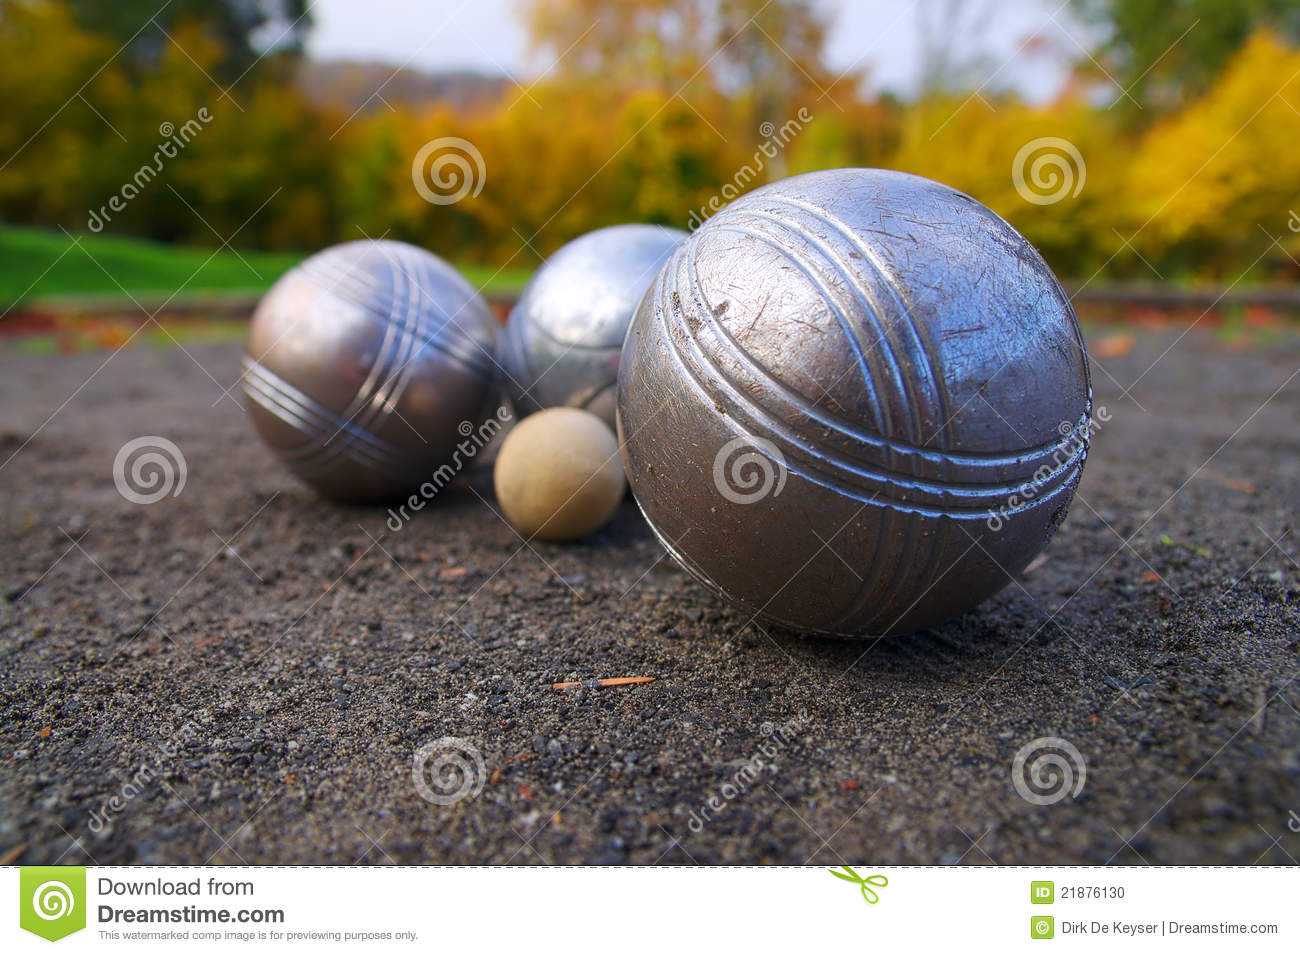 Petanque jeu de boules france sports game stock photo for Reglement jeu de petanque